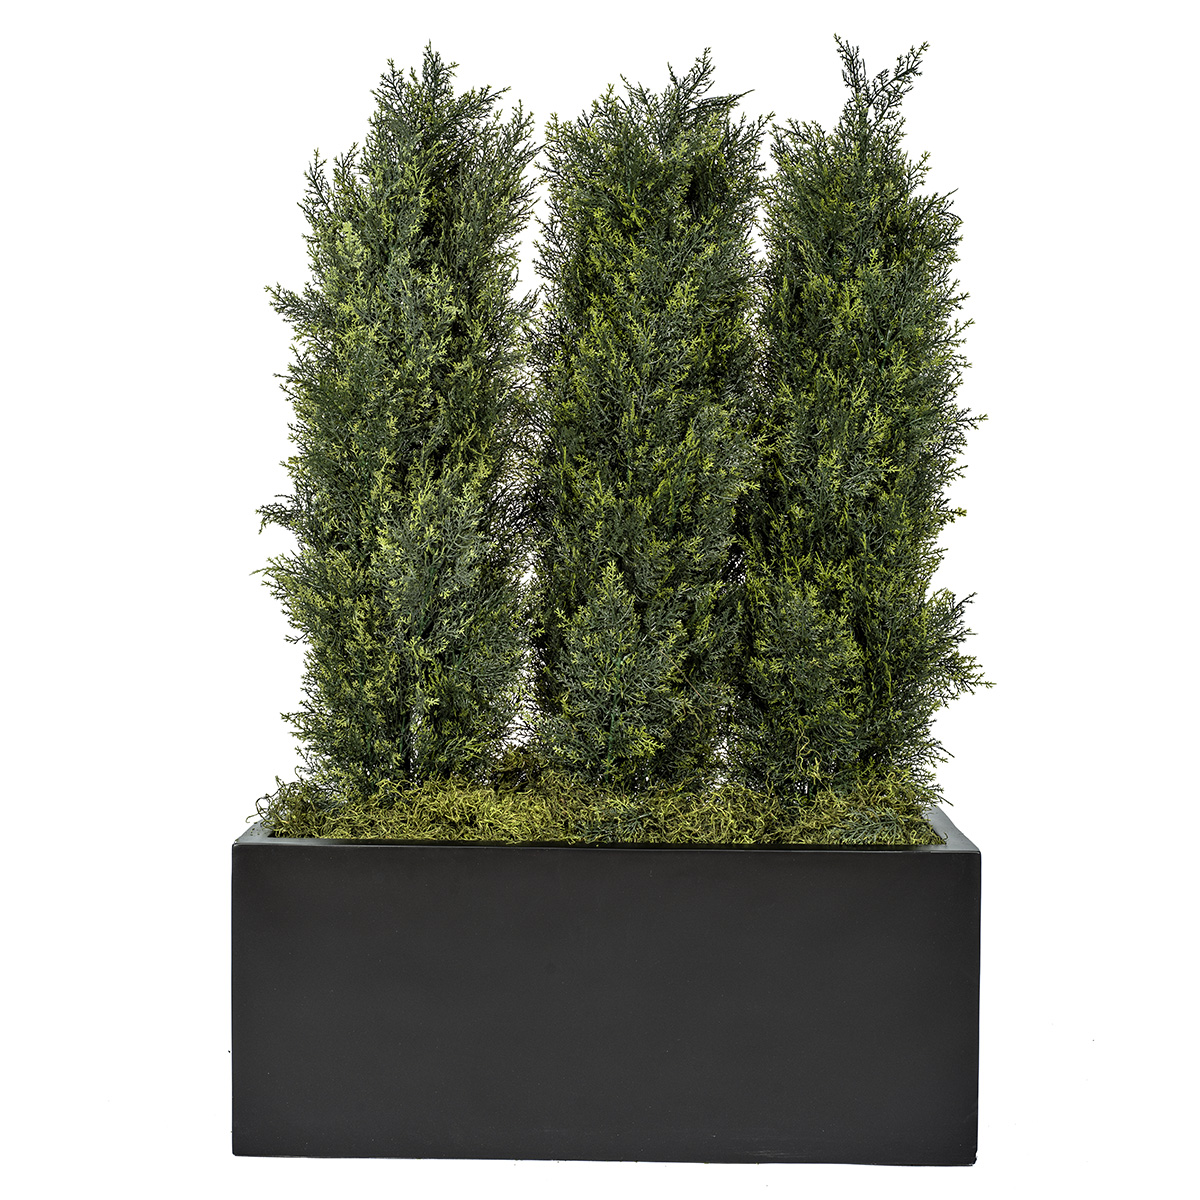 Cypress Shrub Atlas Pots